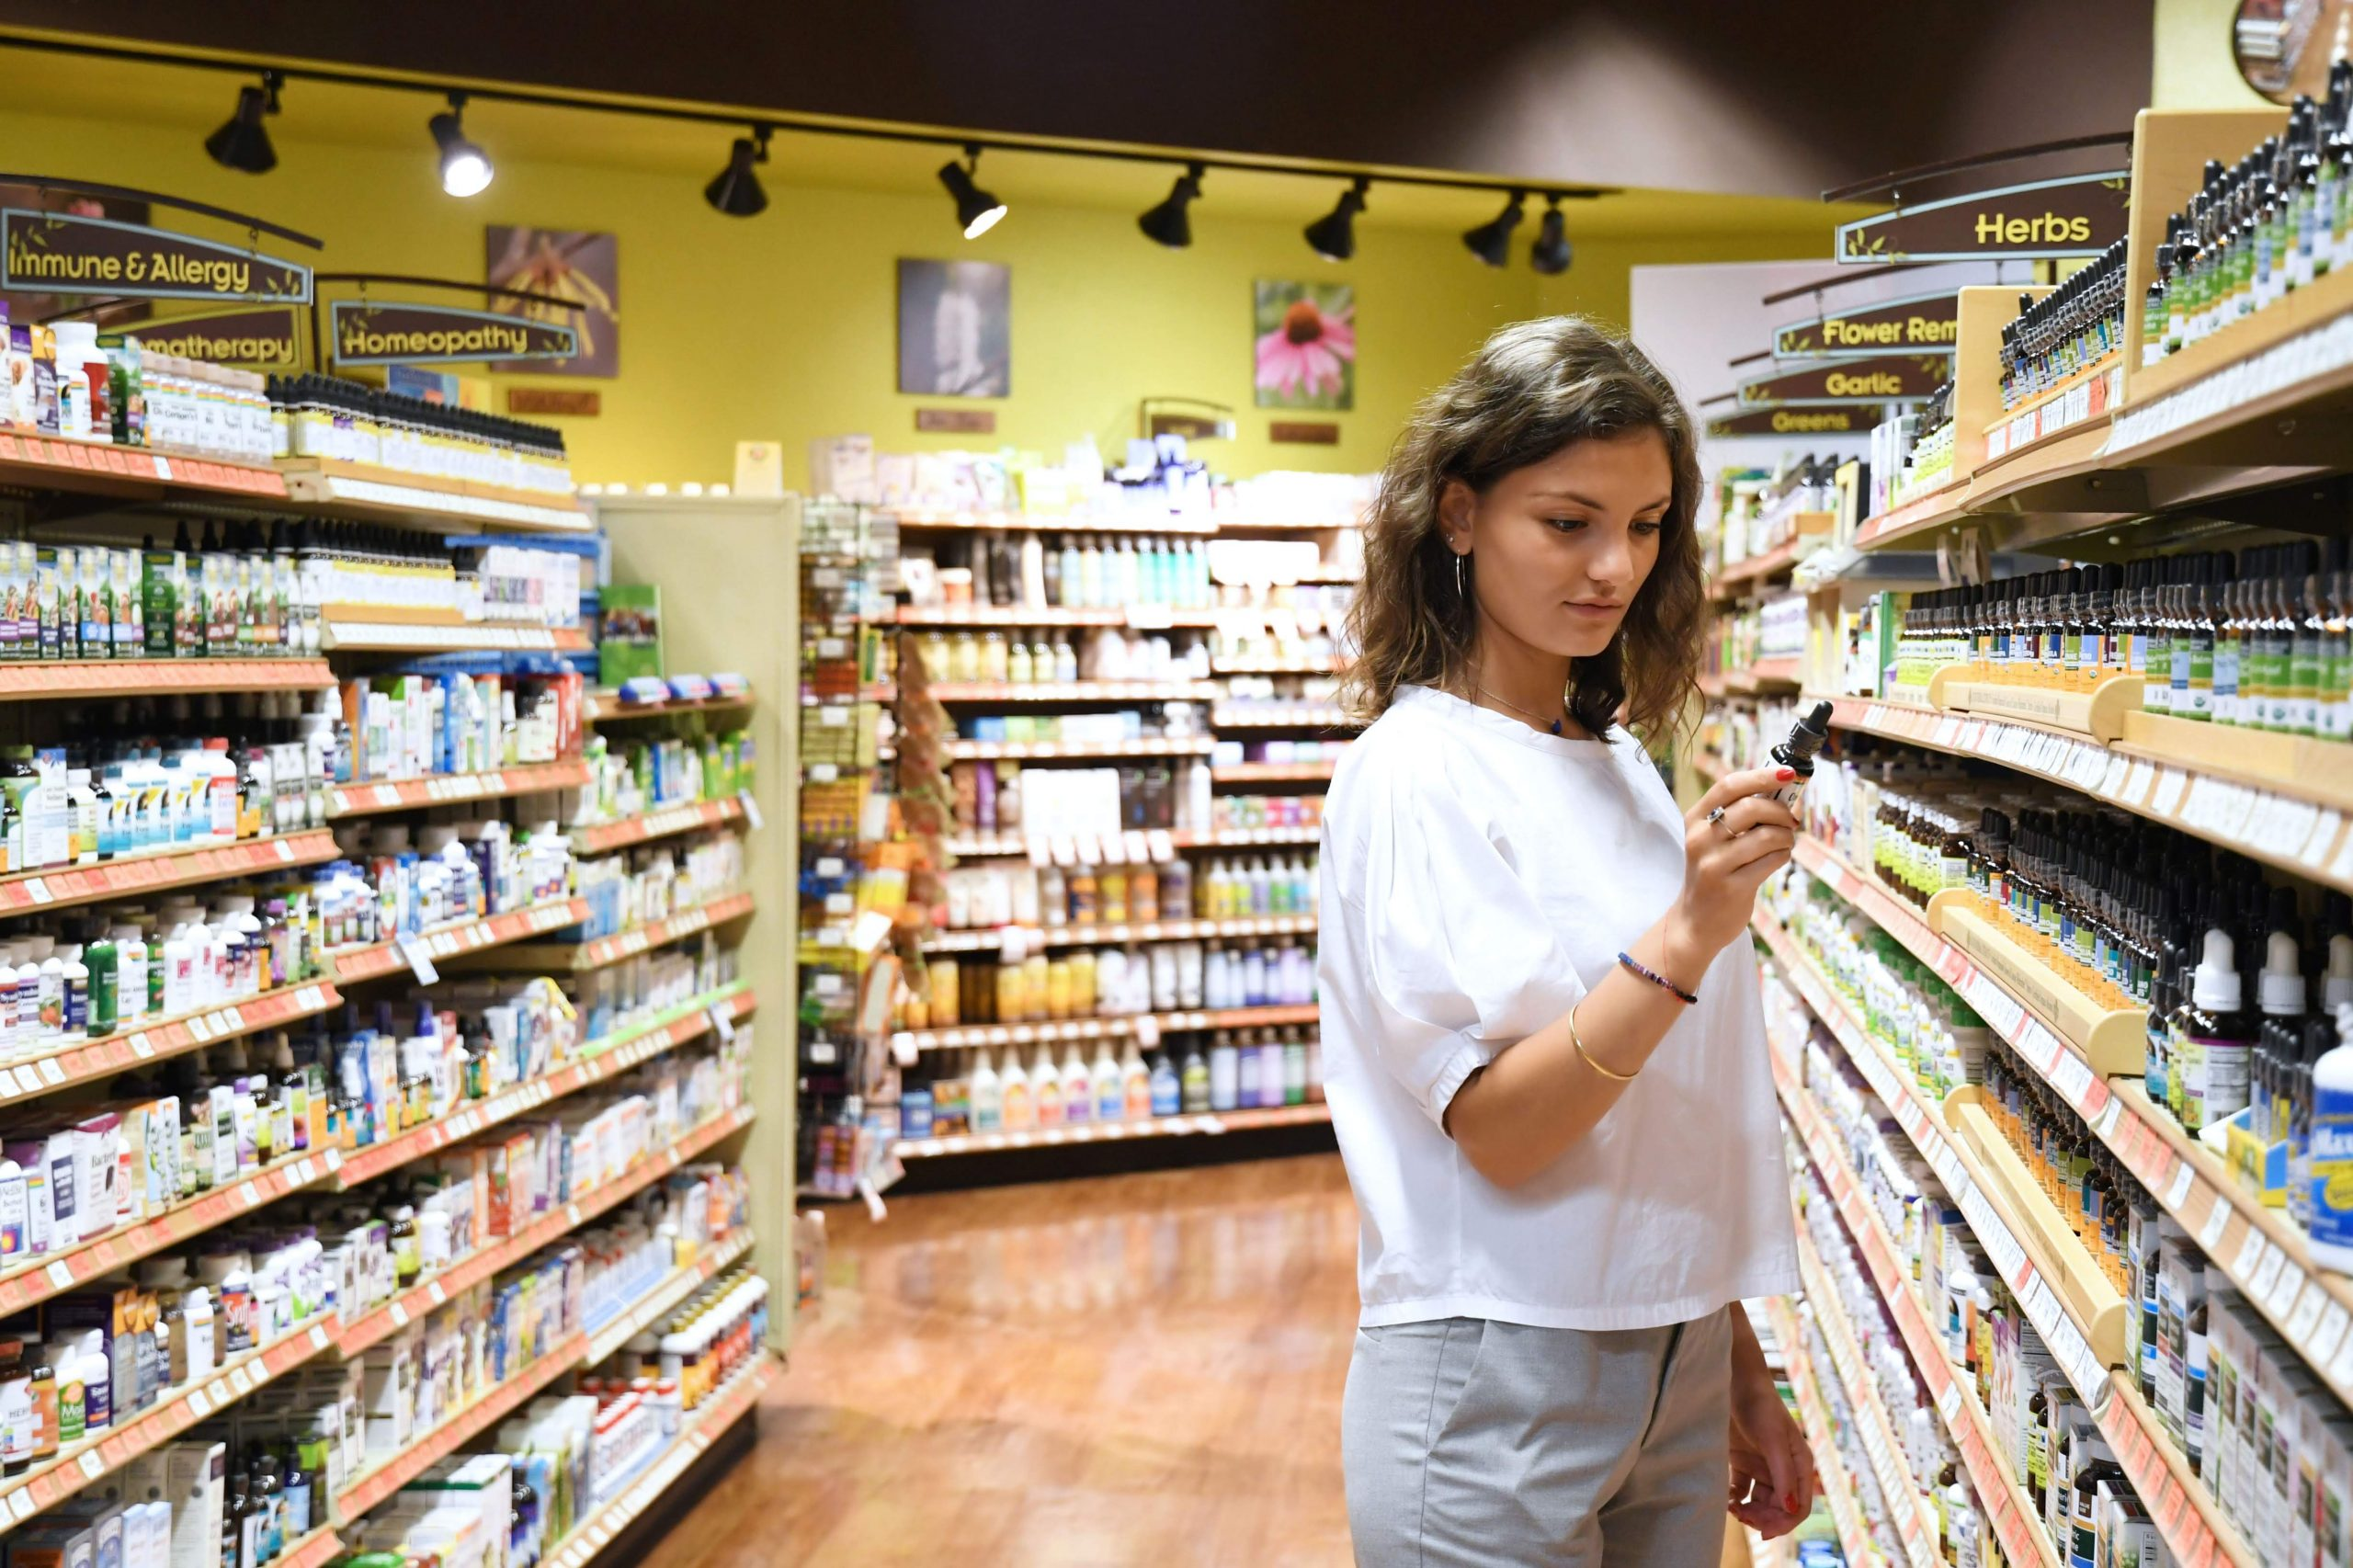 ALL Wellness (vitamins, supplements & body care) ON SALE! 10% or more, the third Wednesday of every month